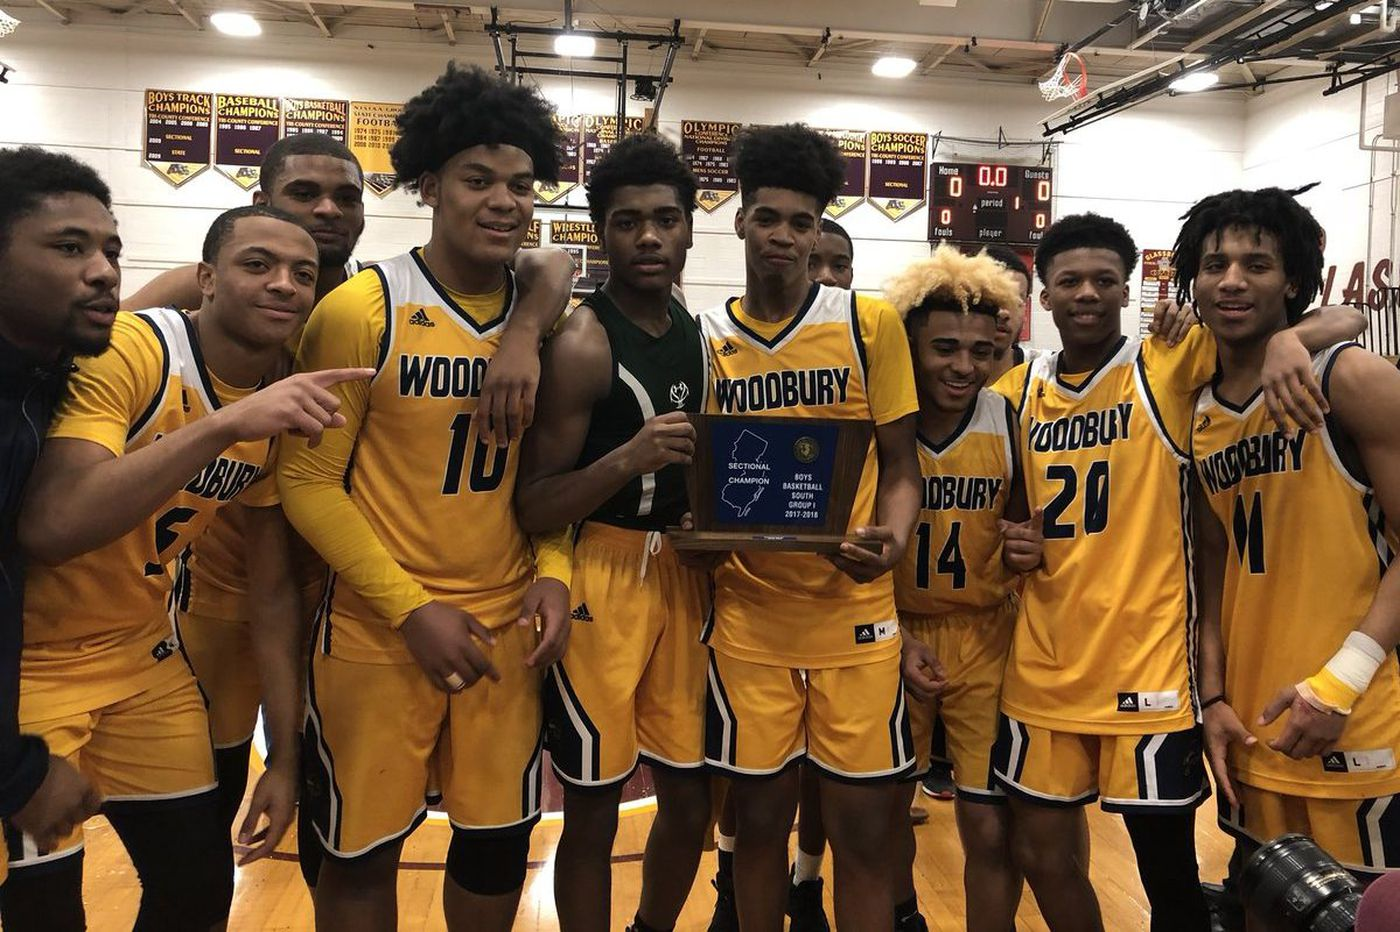 Tuesday's S.J. roundup: Woodbury boys repeat as South Group 1 champions